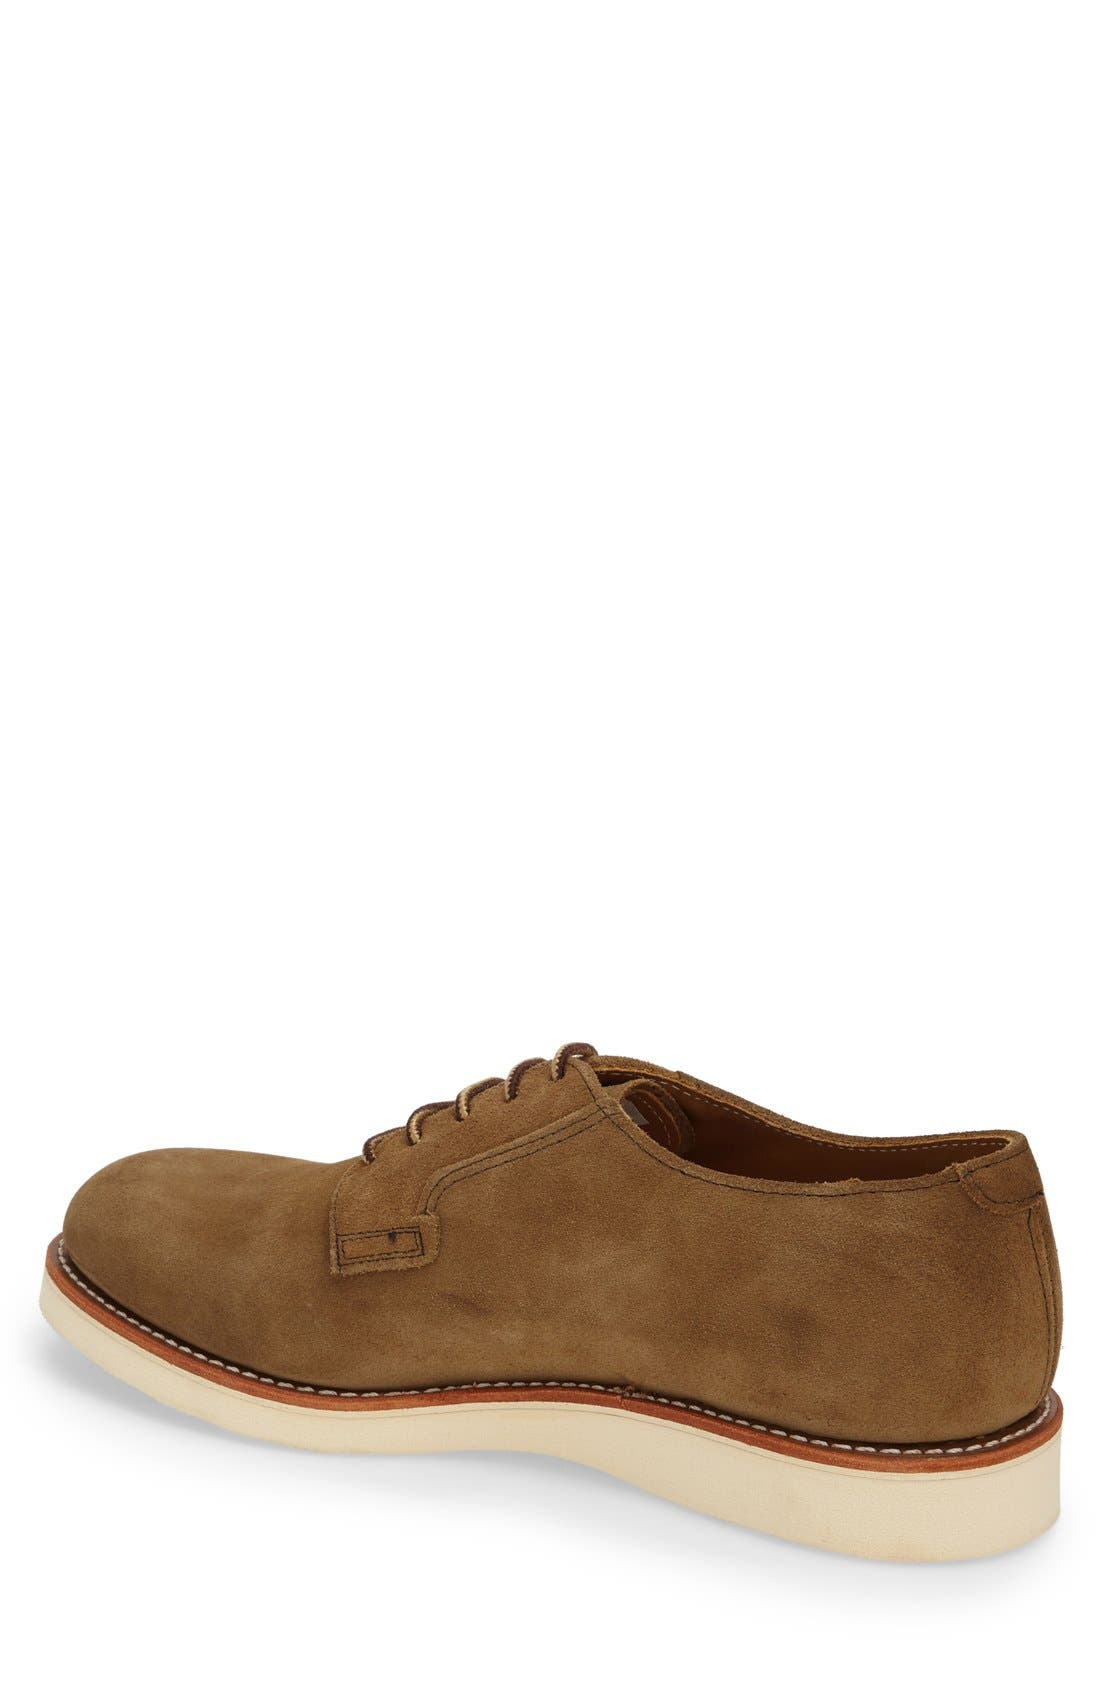 Alternate Image 2  - Red Wing 'Postman' Oxford (Online Only)